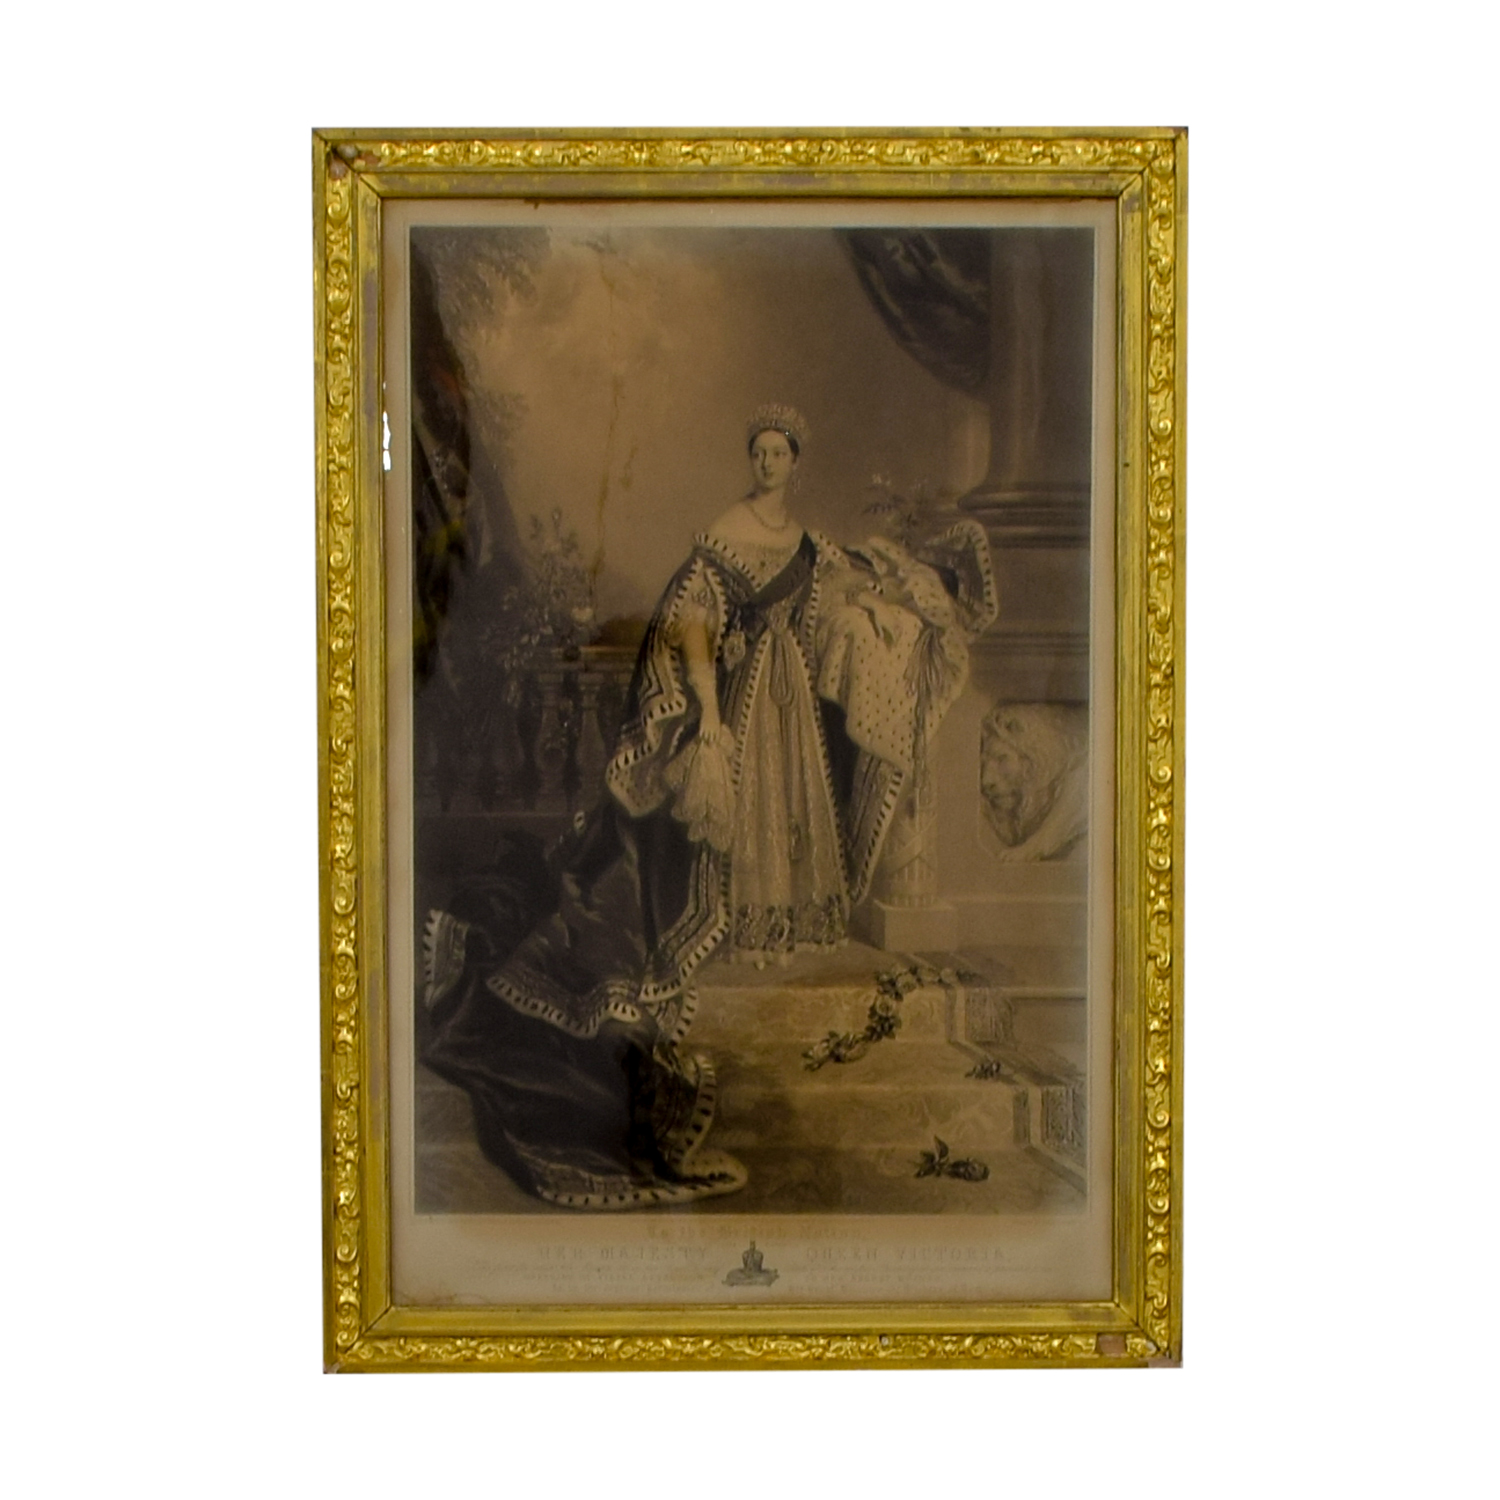 Queen Victoria of England Gold Framed Photograph